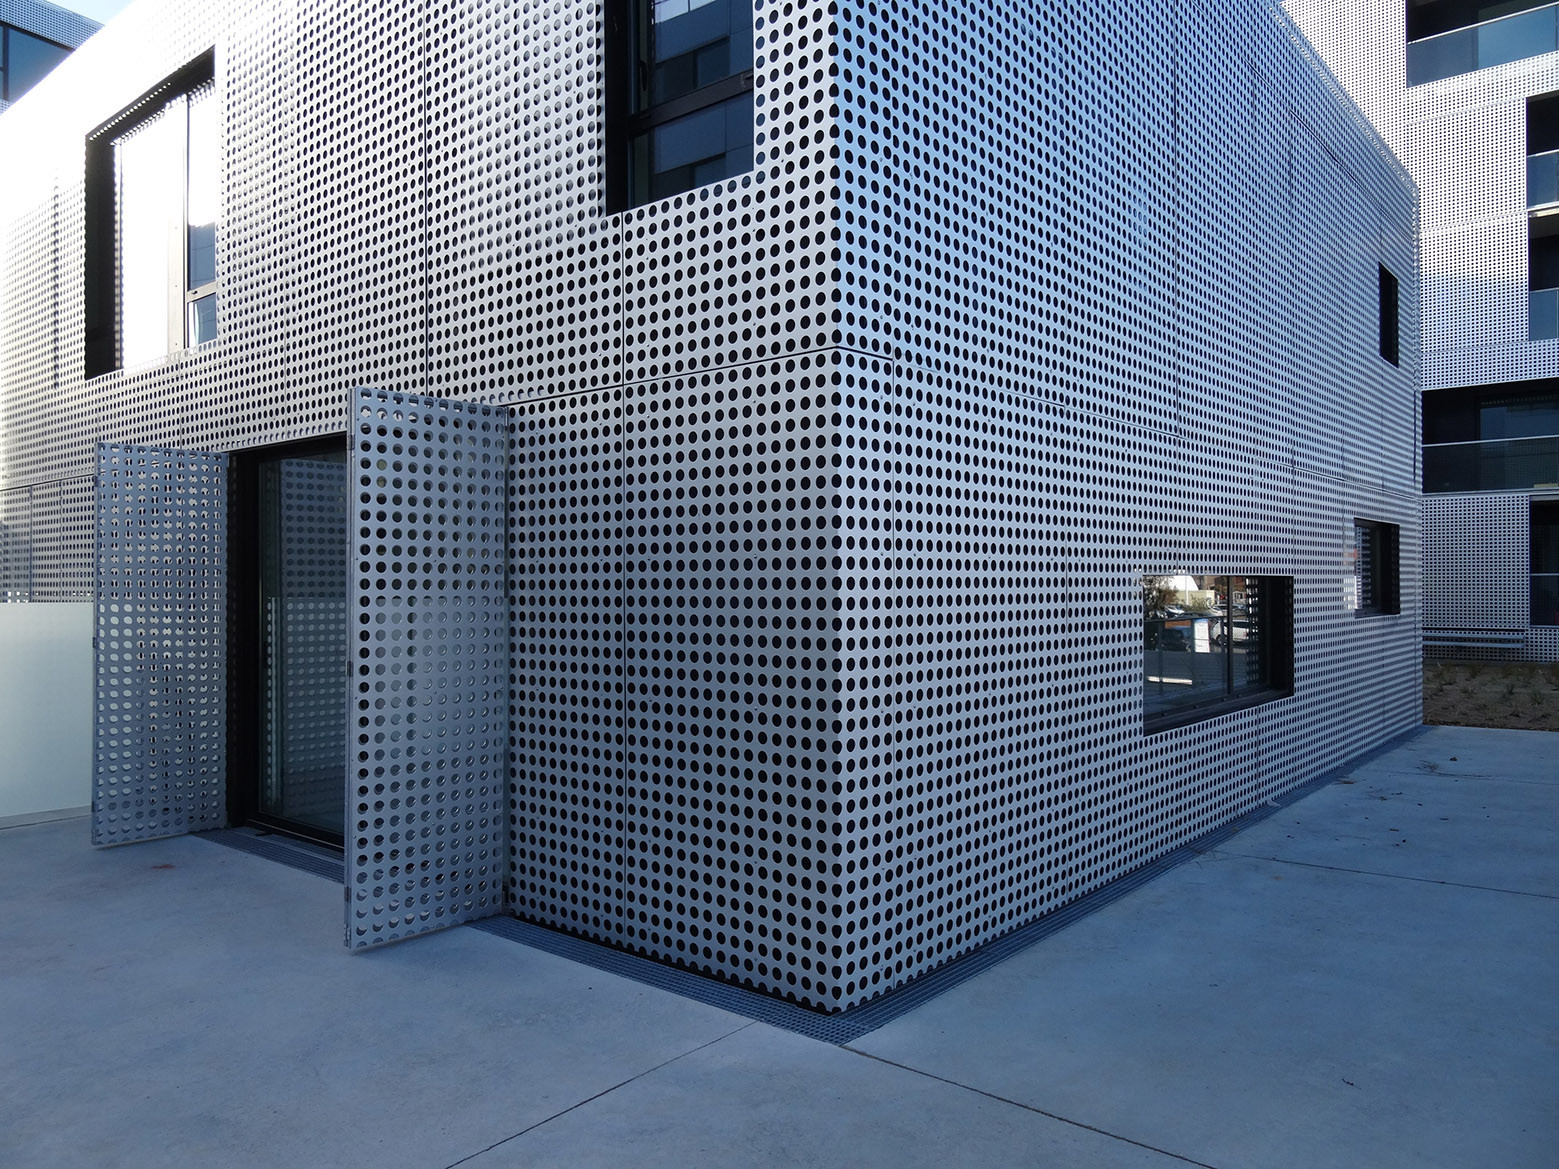 Gallery of housing in le havre phd architectes 4 for Metal piers for housing